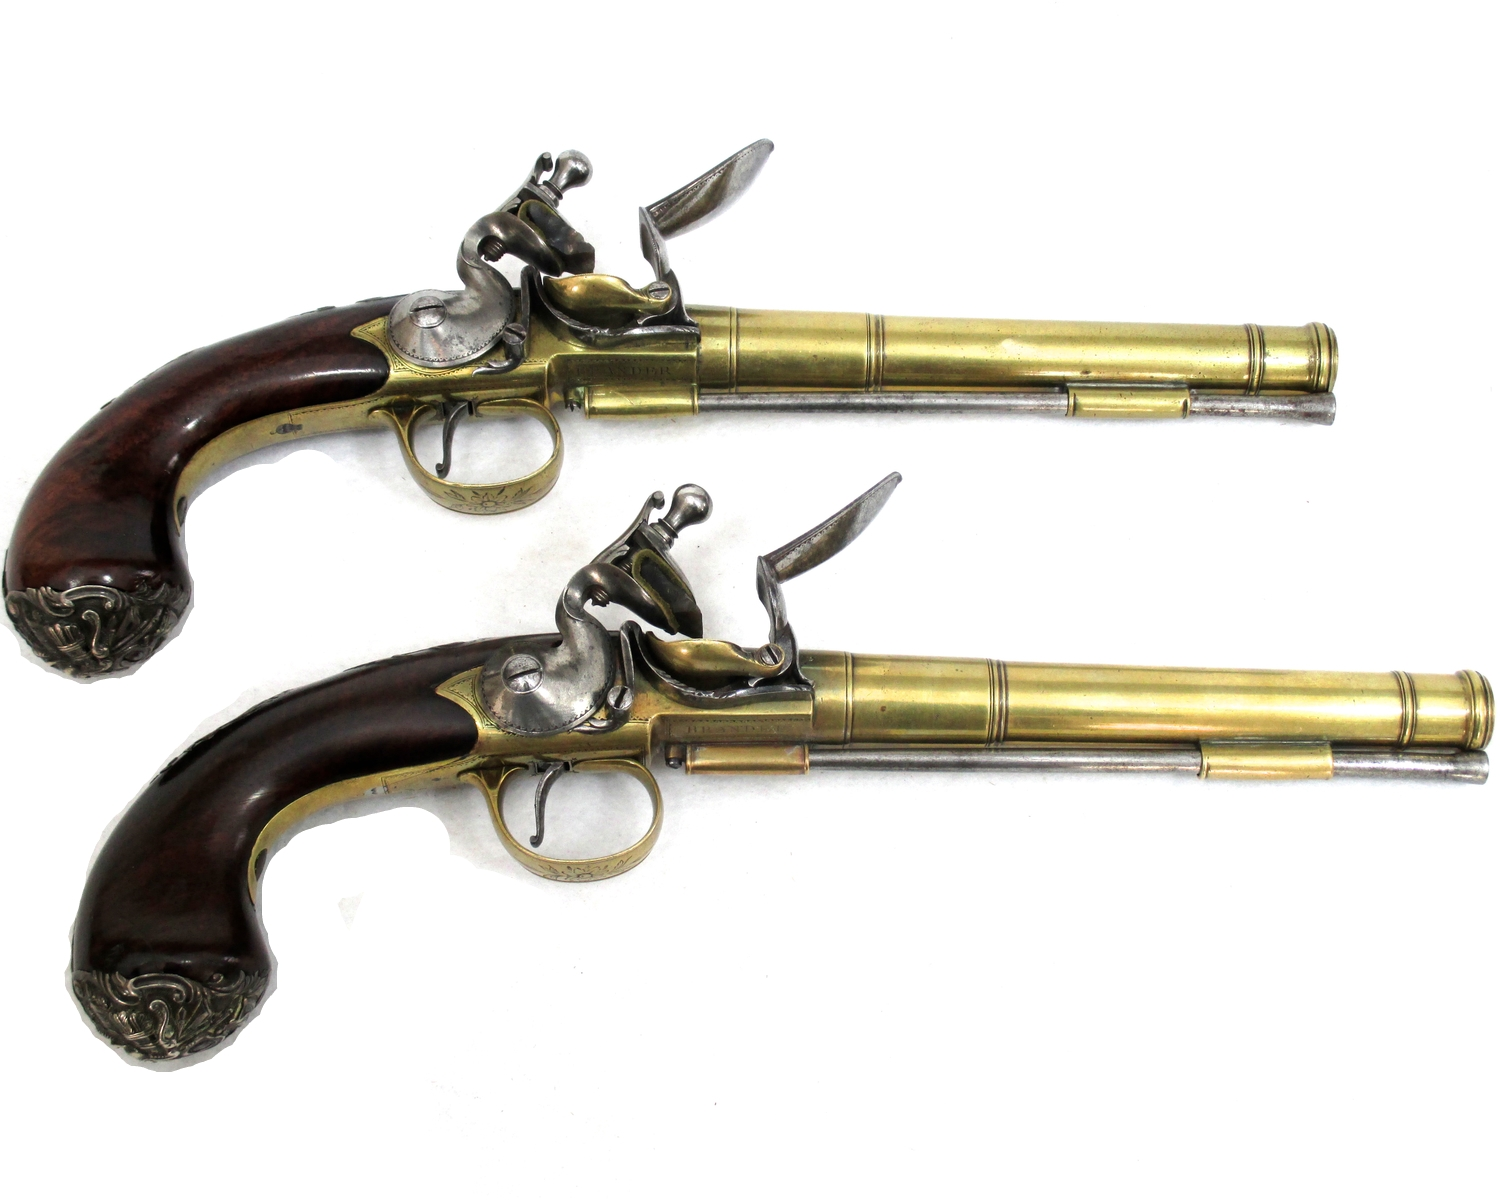 pair-flintlock-pistols-william-brander-english-guns-weapons-gary-friedland-arms-armor.jpg